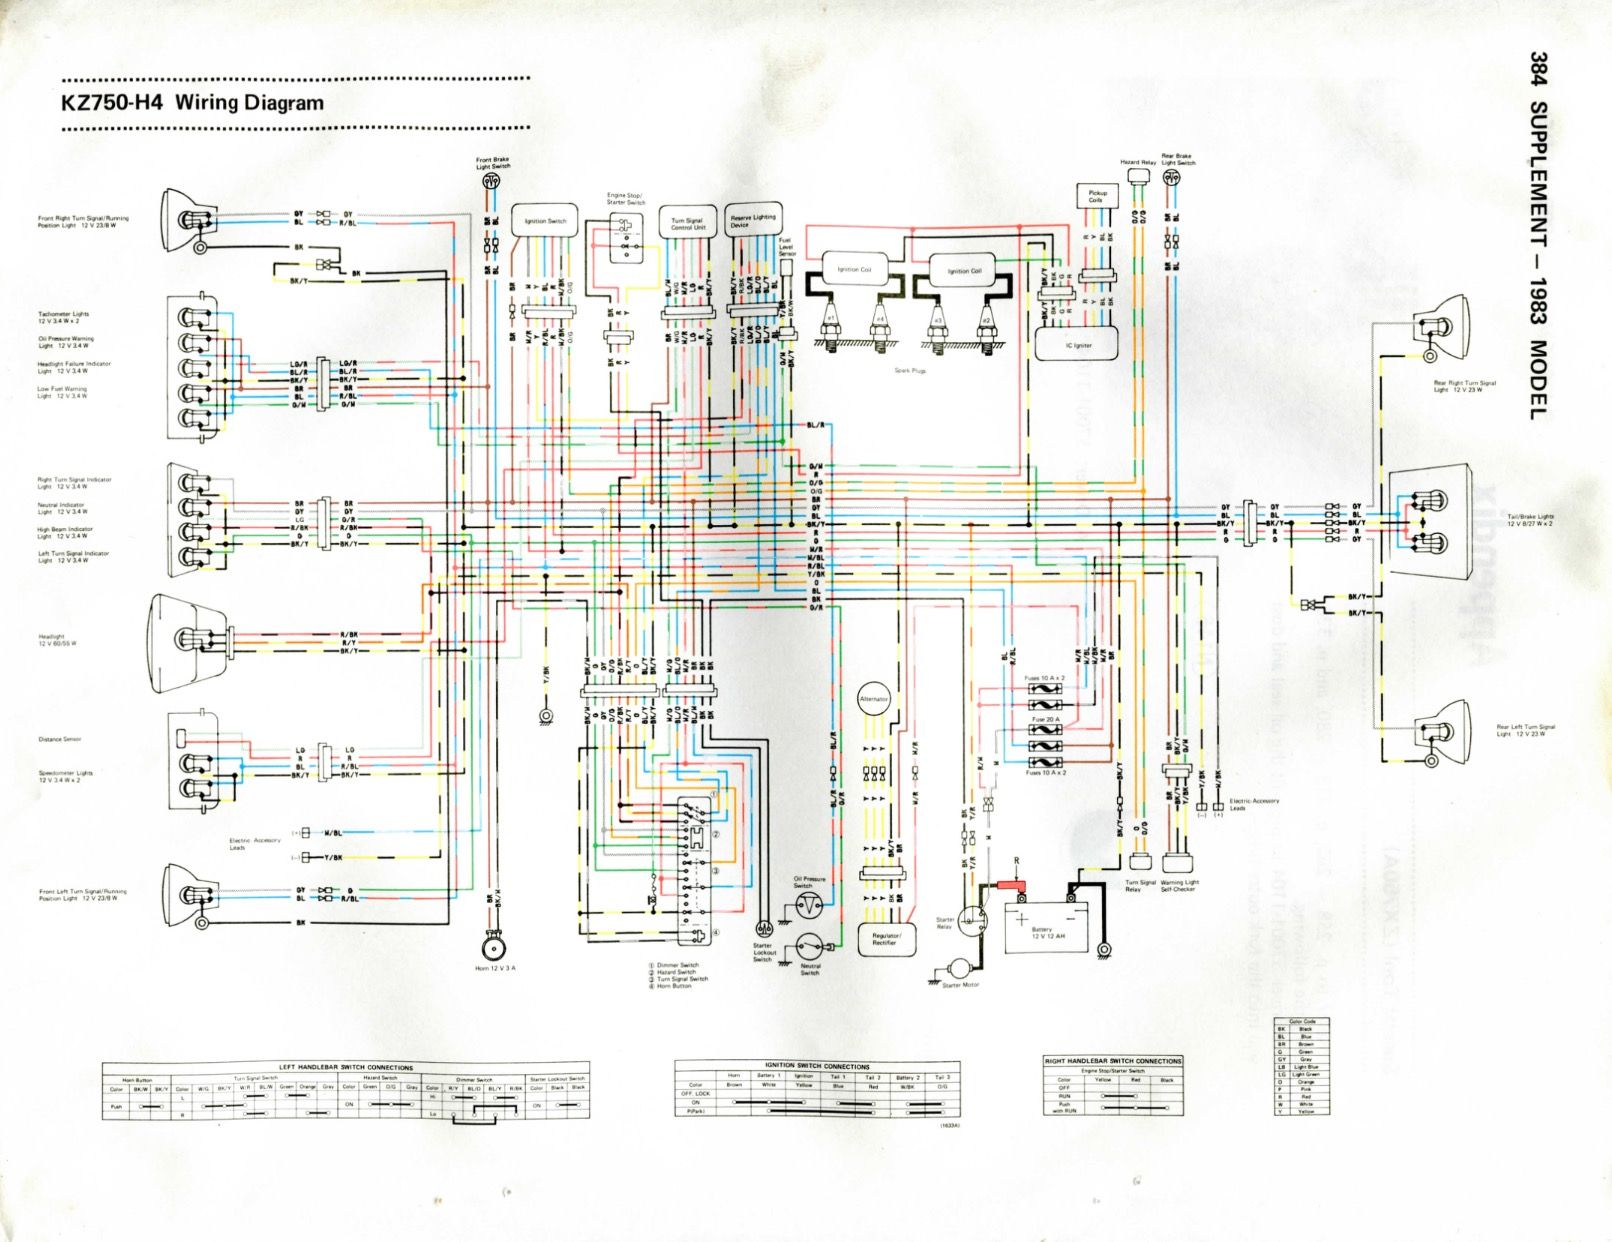 1983 Kawasaki Wiring Diagram Manual Guide. 1983 Kawasaki Kz750 H4 Ltd Wiring Diagram Highly Utilized During Rh Pinterest Motorcycle Diagrams Klt 250. Wiring. 1994 Klr 650 Wiring Schematic At Scoala.co